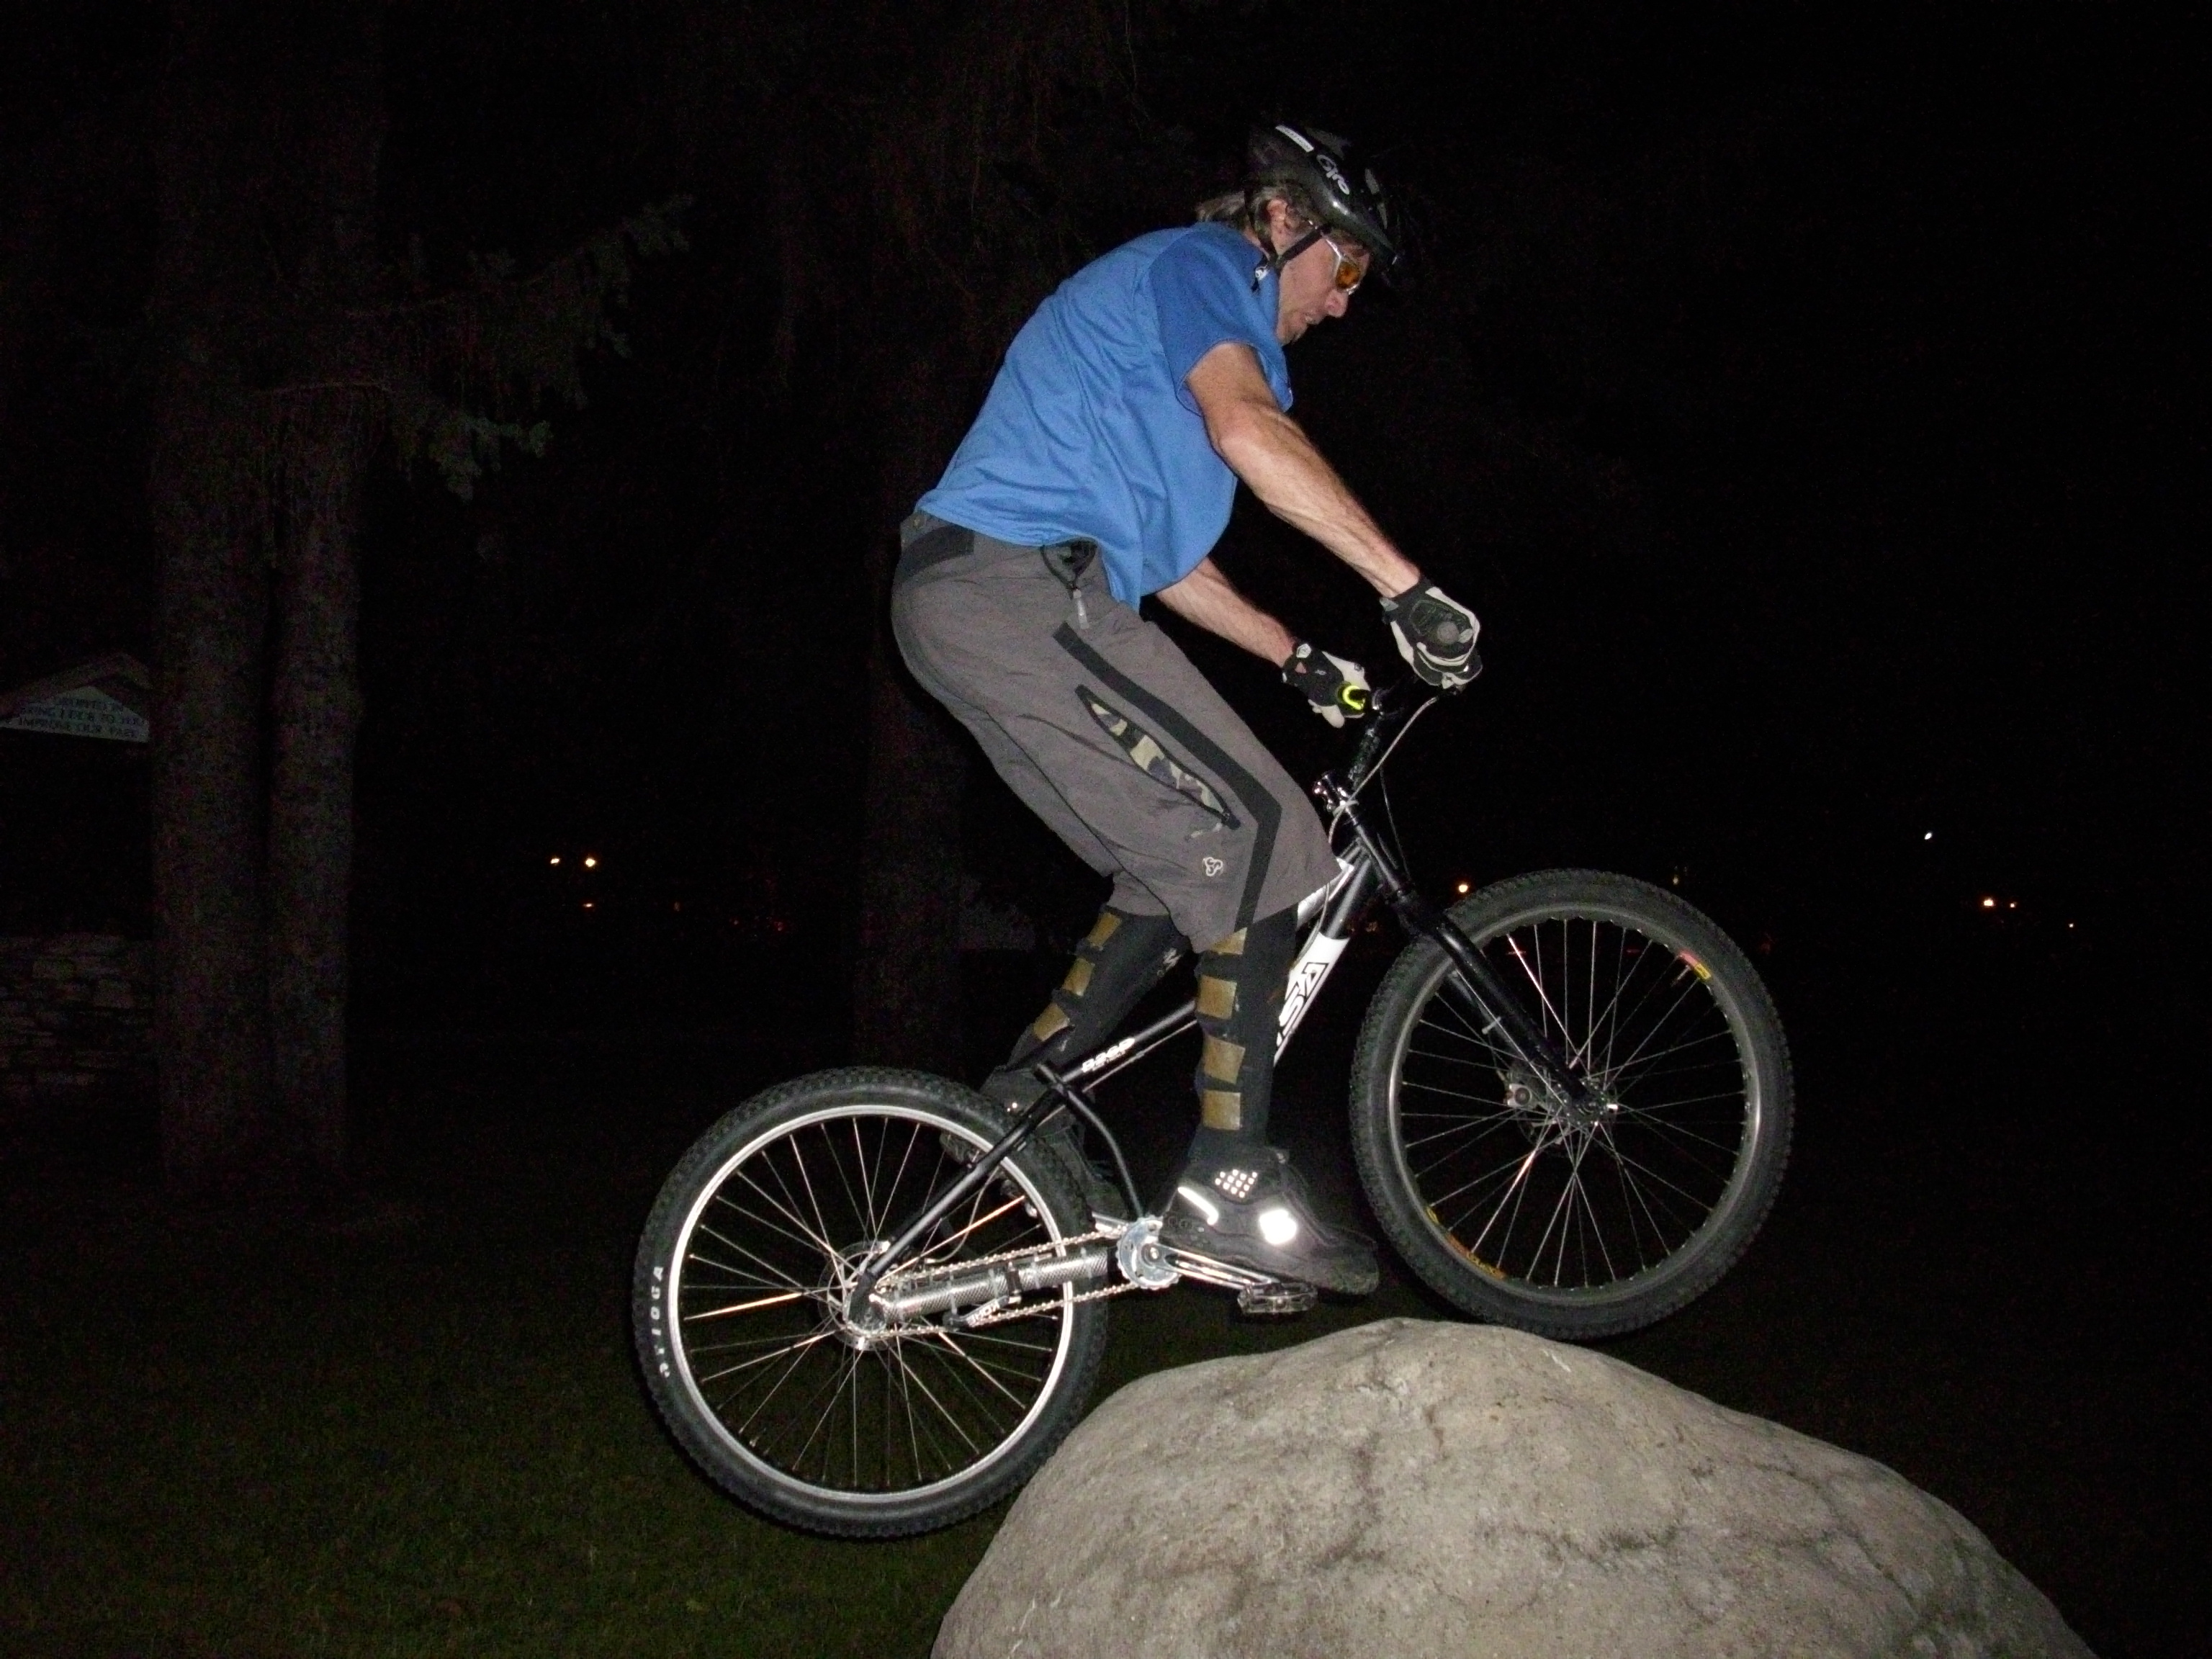 This one made repeated runs at this rock until he had hopped off and smoothly rolled off to his satisfaction.  Then he faded into the night.